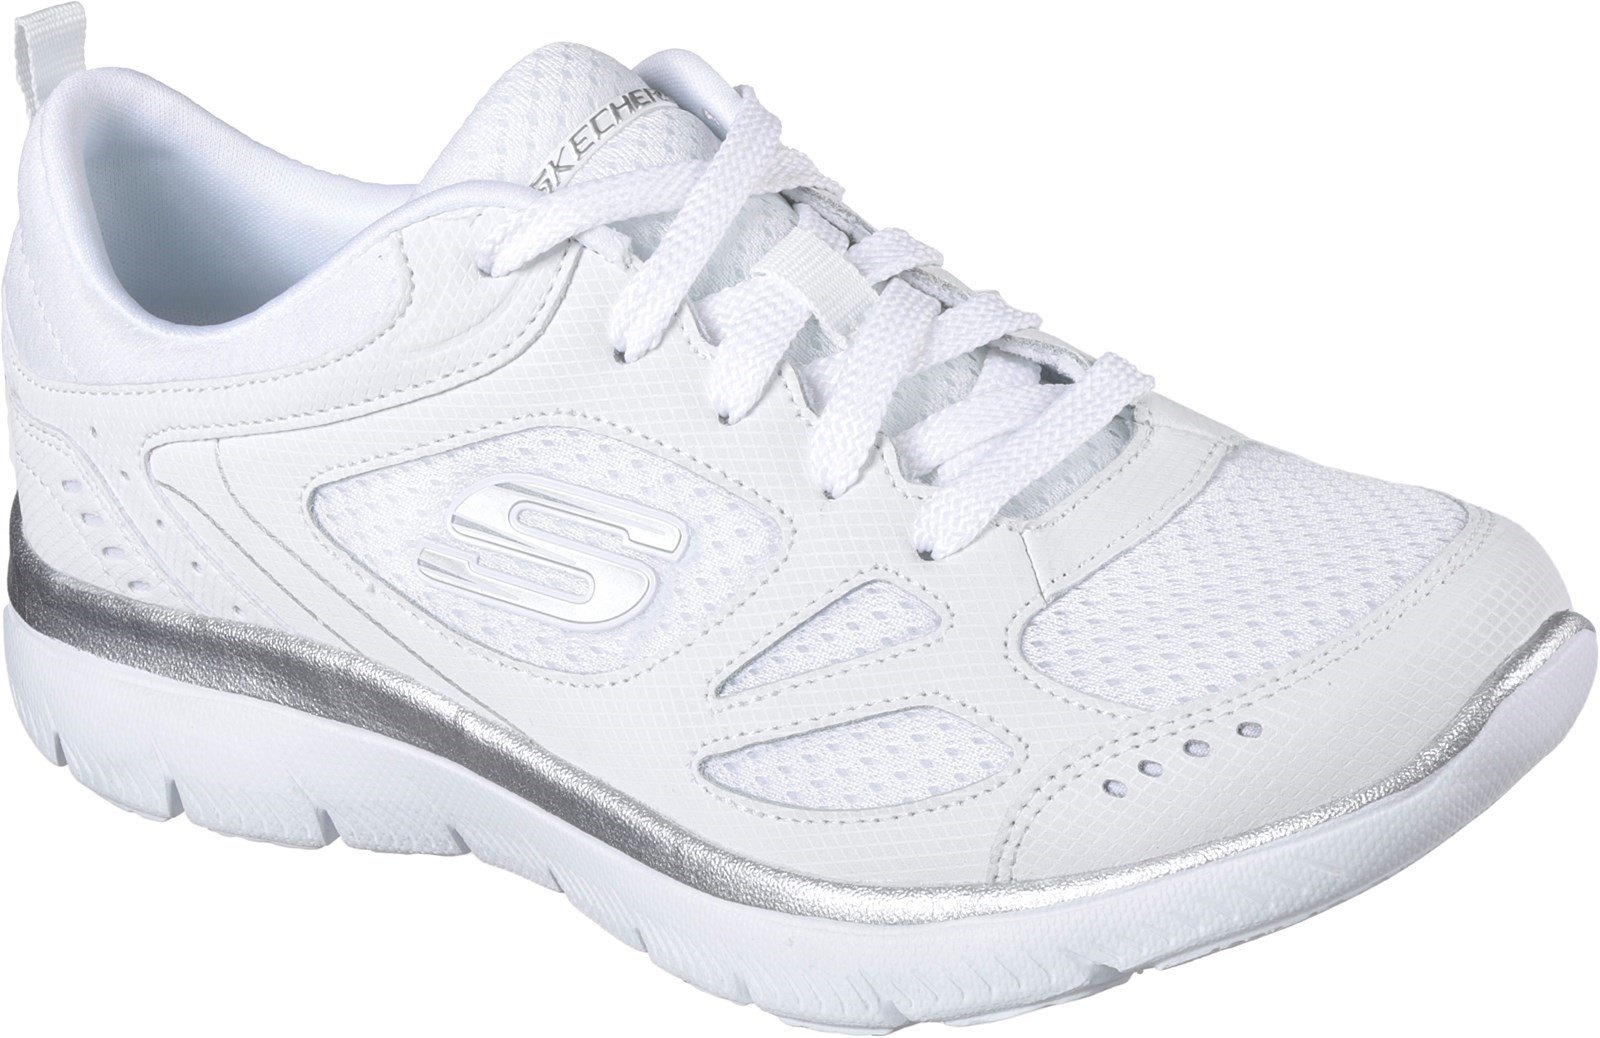 Skechers Women's Summits Suited Lace Up Trainer Multicolor 31941 - White/Silver 3